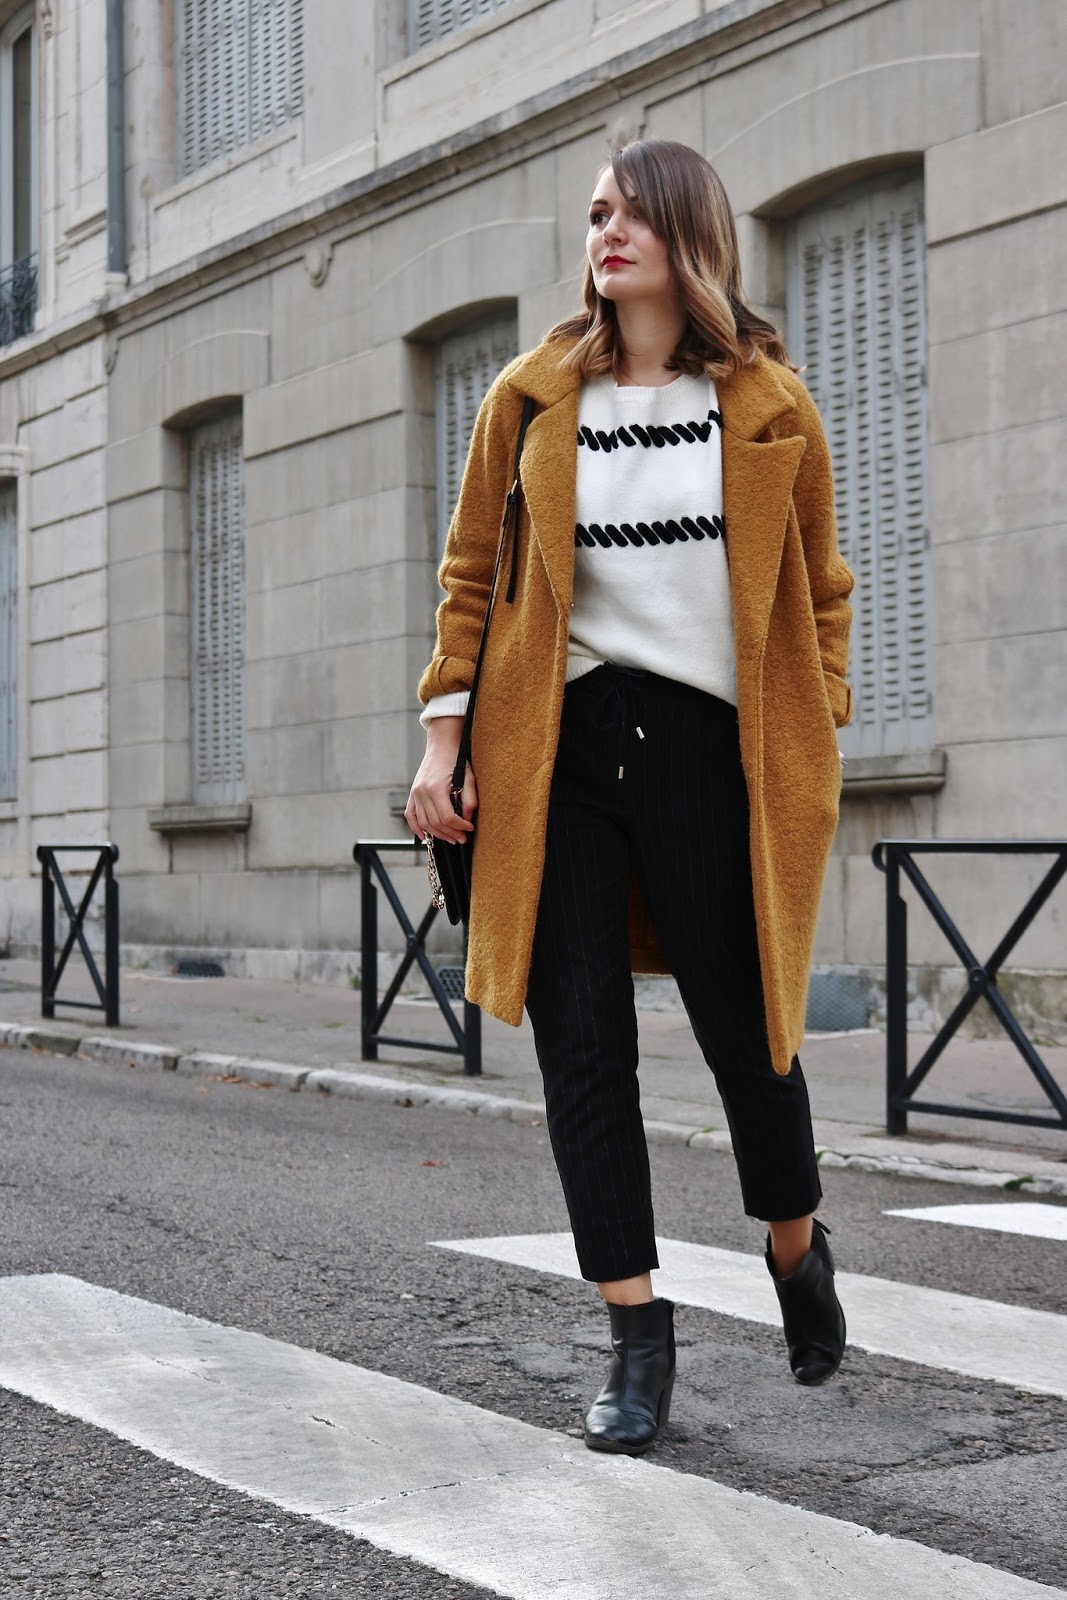 pauline-dress-blog-mode-tenue-en-manteau-moutarde-hiver-automne-2017-pull-jogger